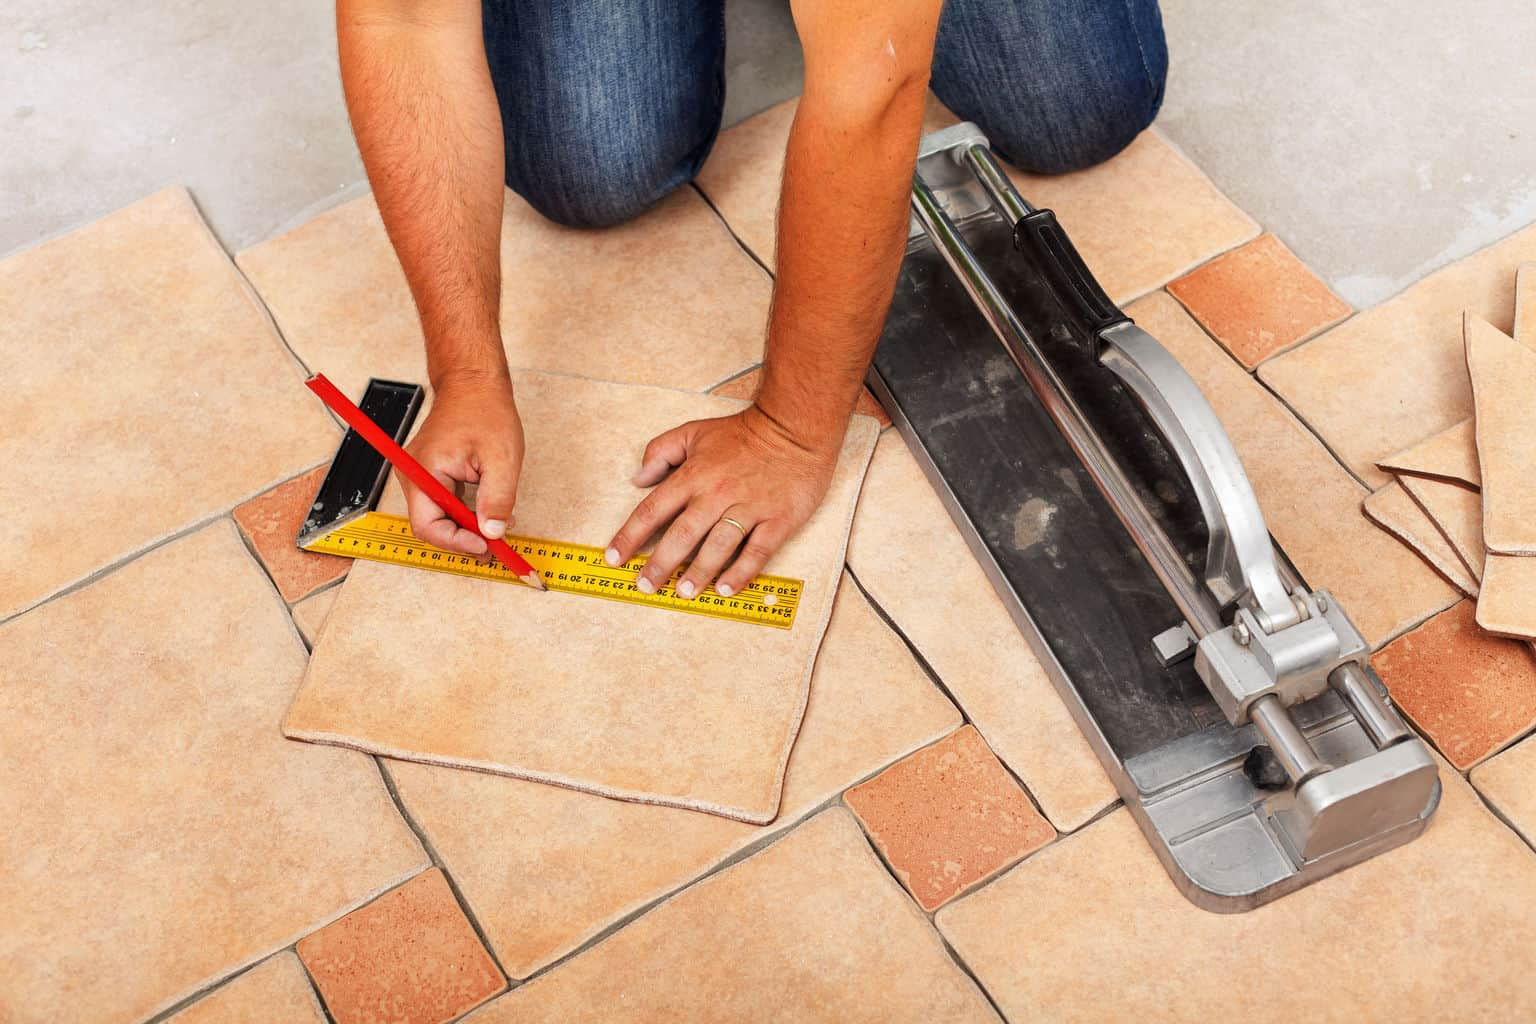 How To Choose Install And Care For Your Flooring [Ultimate Flooring